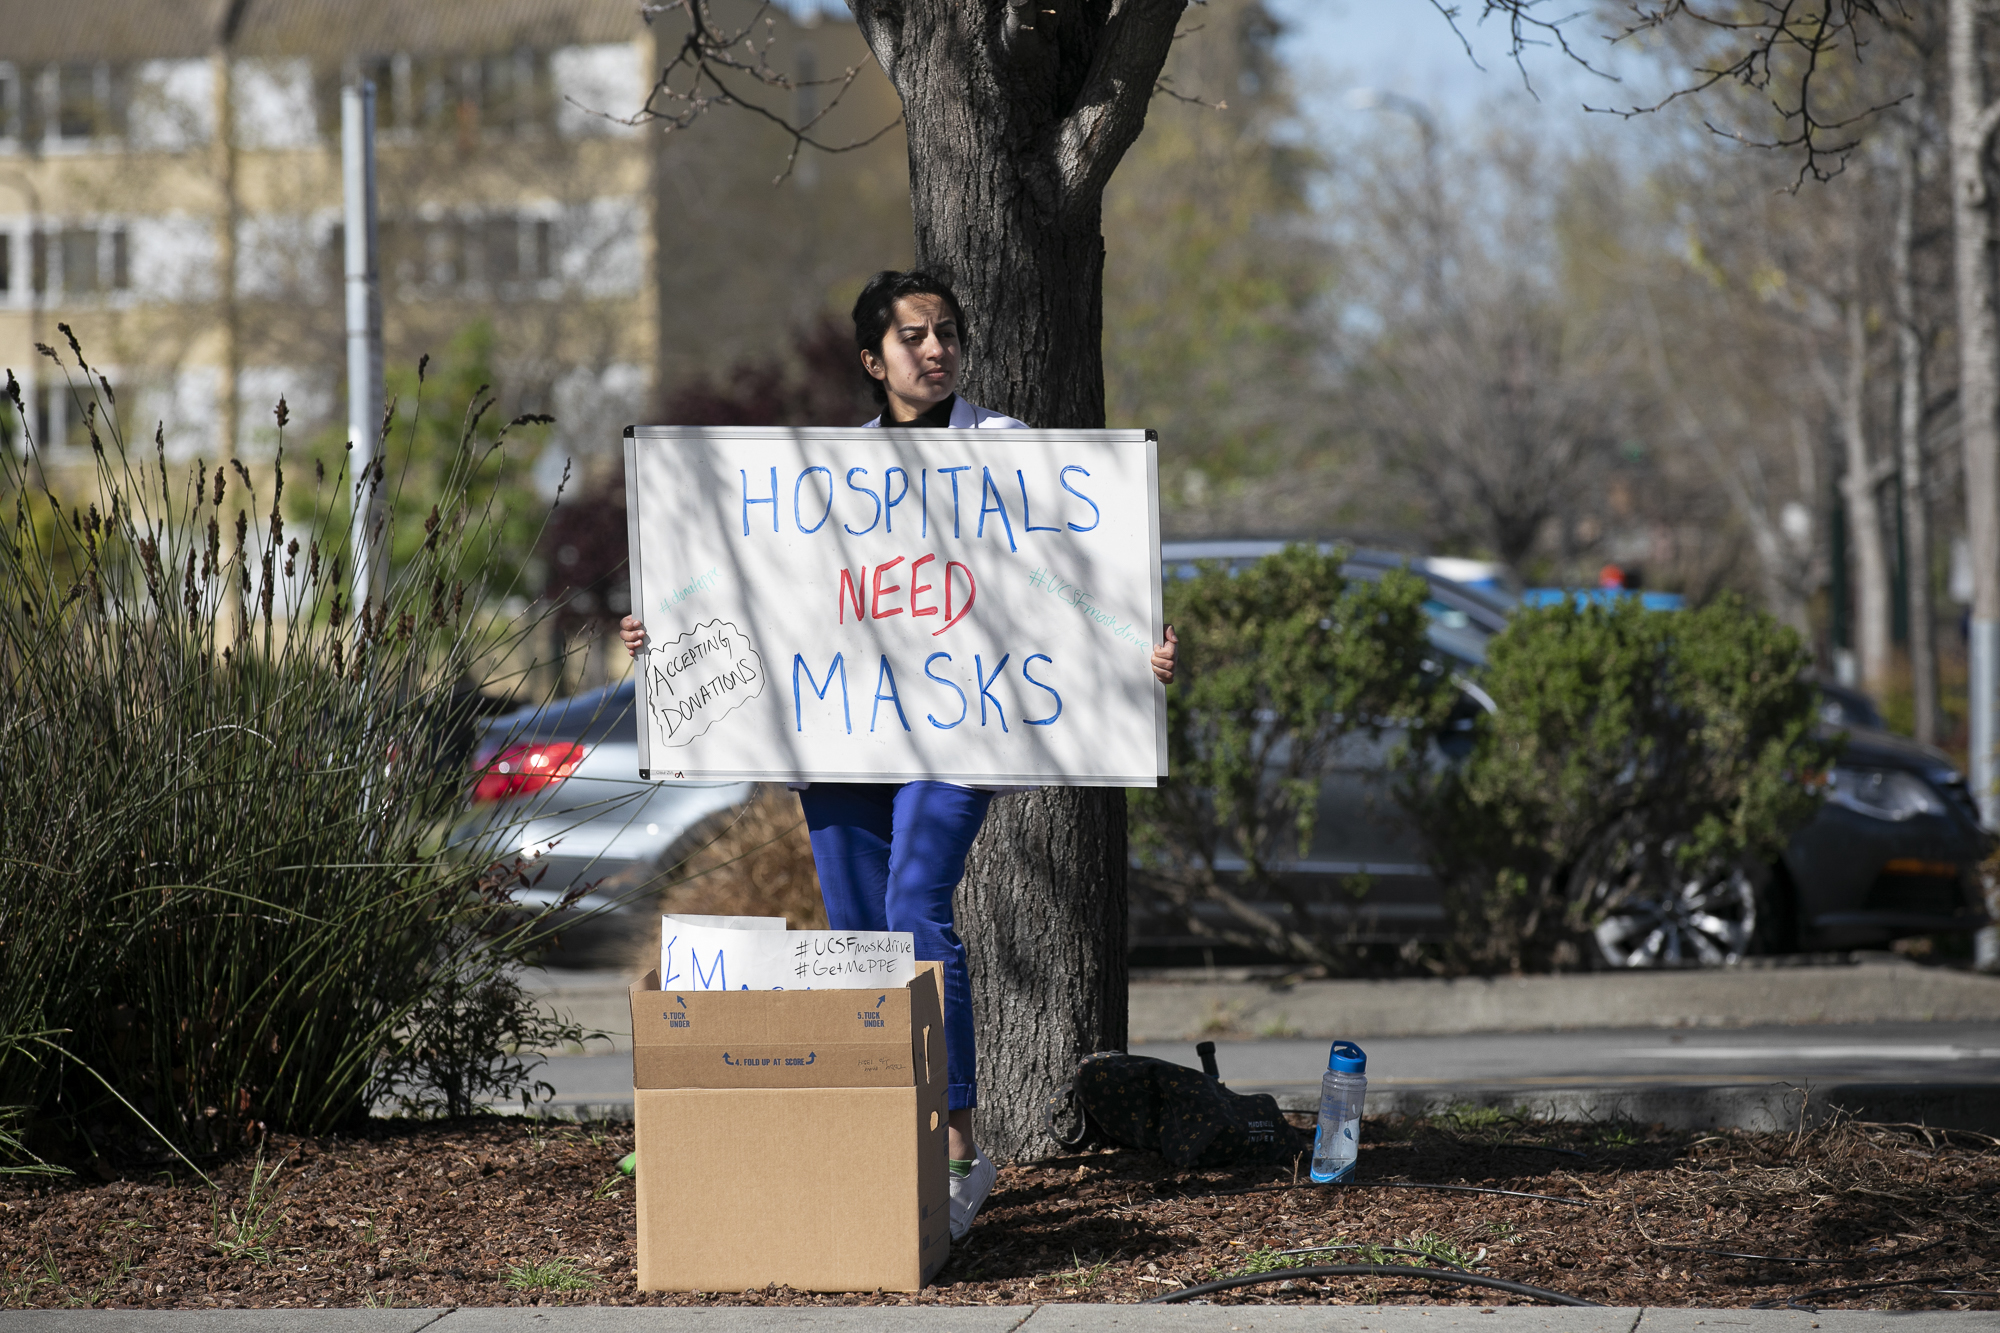 Medical student Shreya Thatai holds up a sign outside of Berkeley Bowl asking for mask donations to help healthcare workers. California Gov. Gavin Newsom promises to have solved the shortage by cutting a massive deal for new masks. Photo by Anne Wernikoff for CalMatters